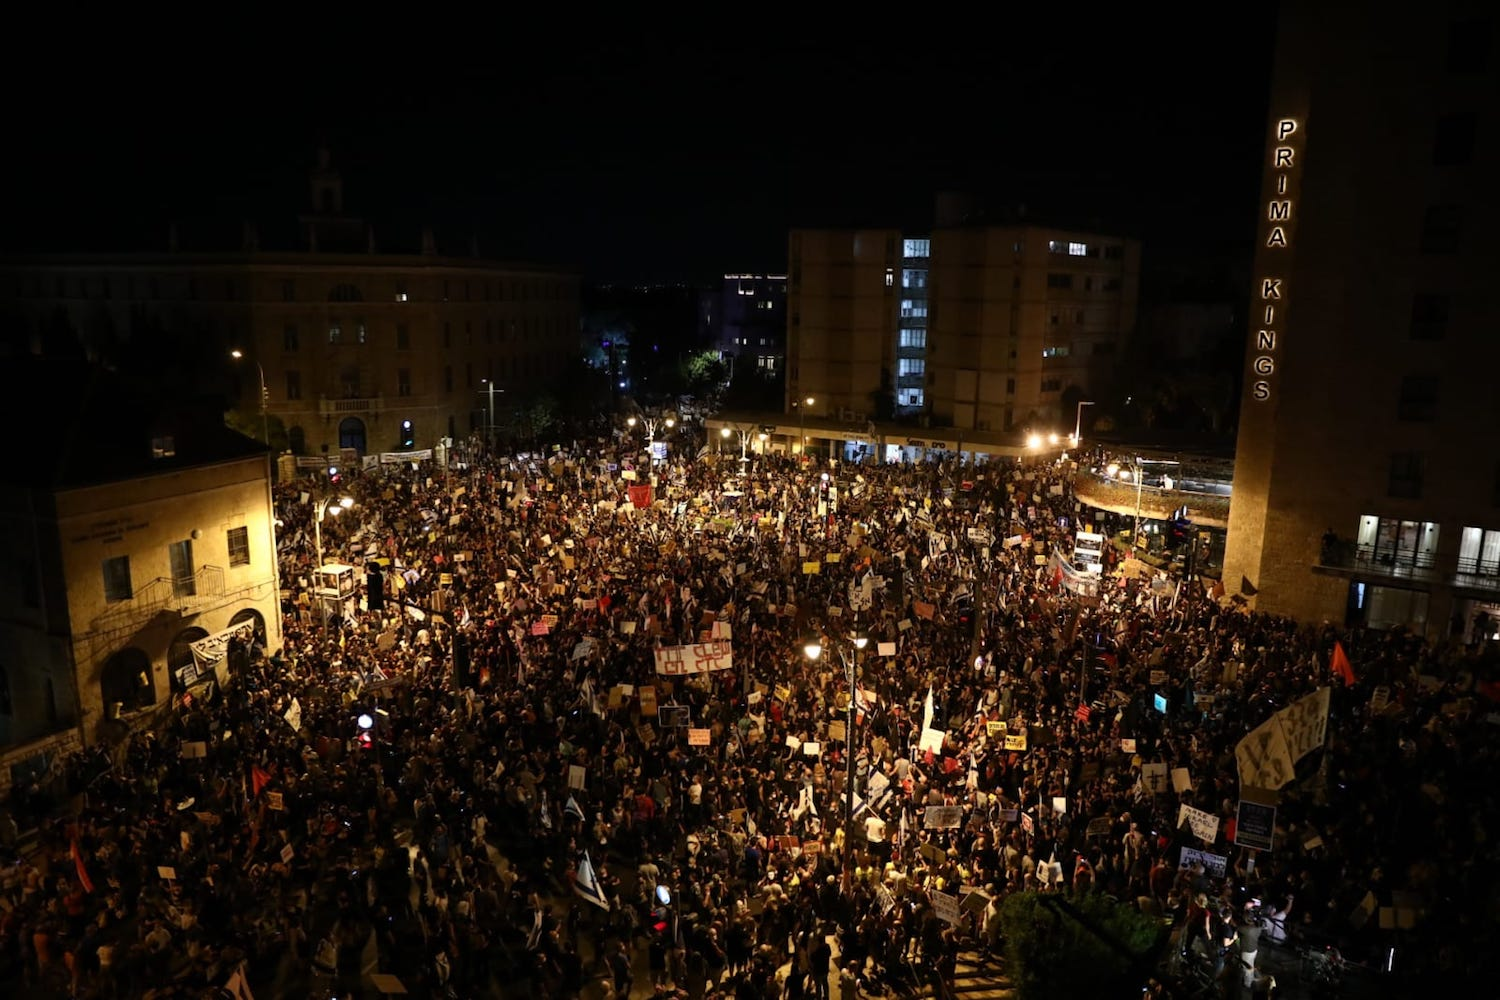 Tens of thousands fill Jerusalem's Paris Square during the weekly anti-Netanyahu demonstrations, August 1, 2020. (Oren Ziv)